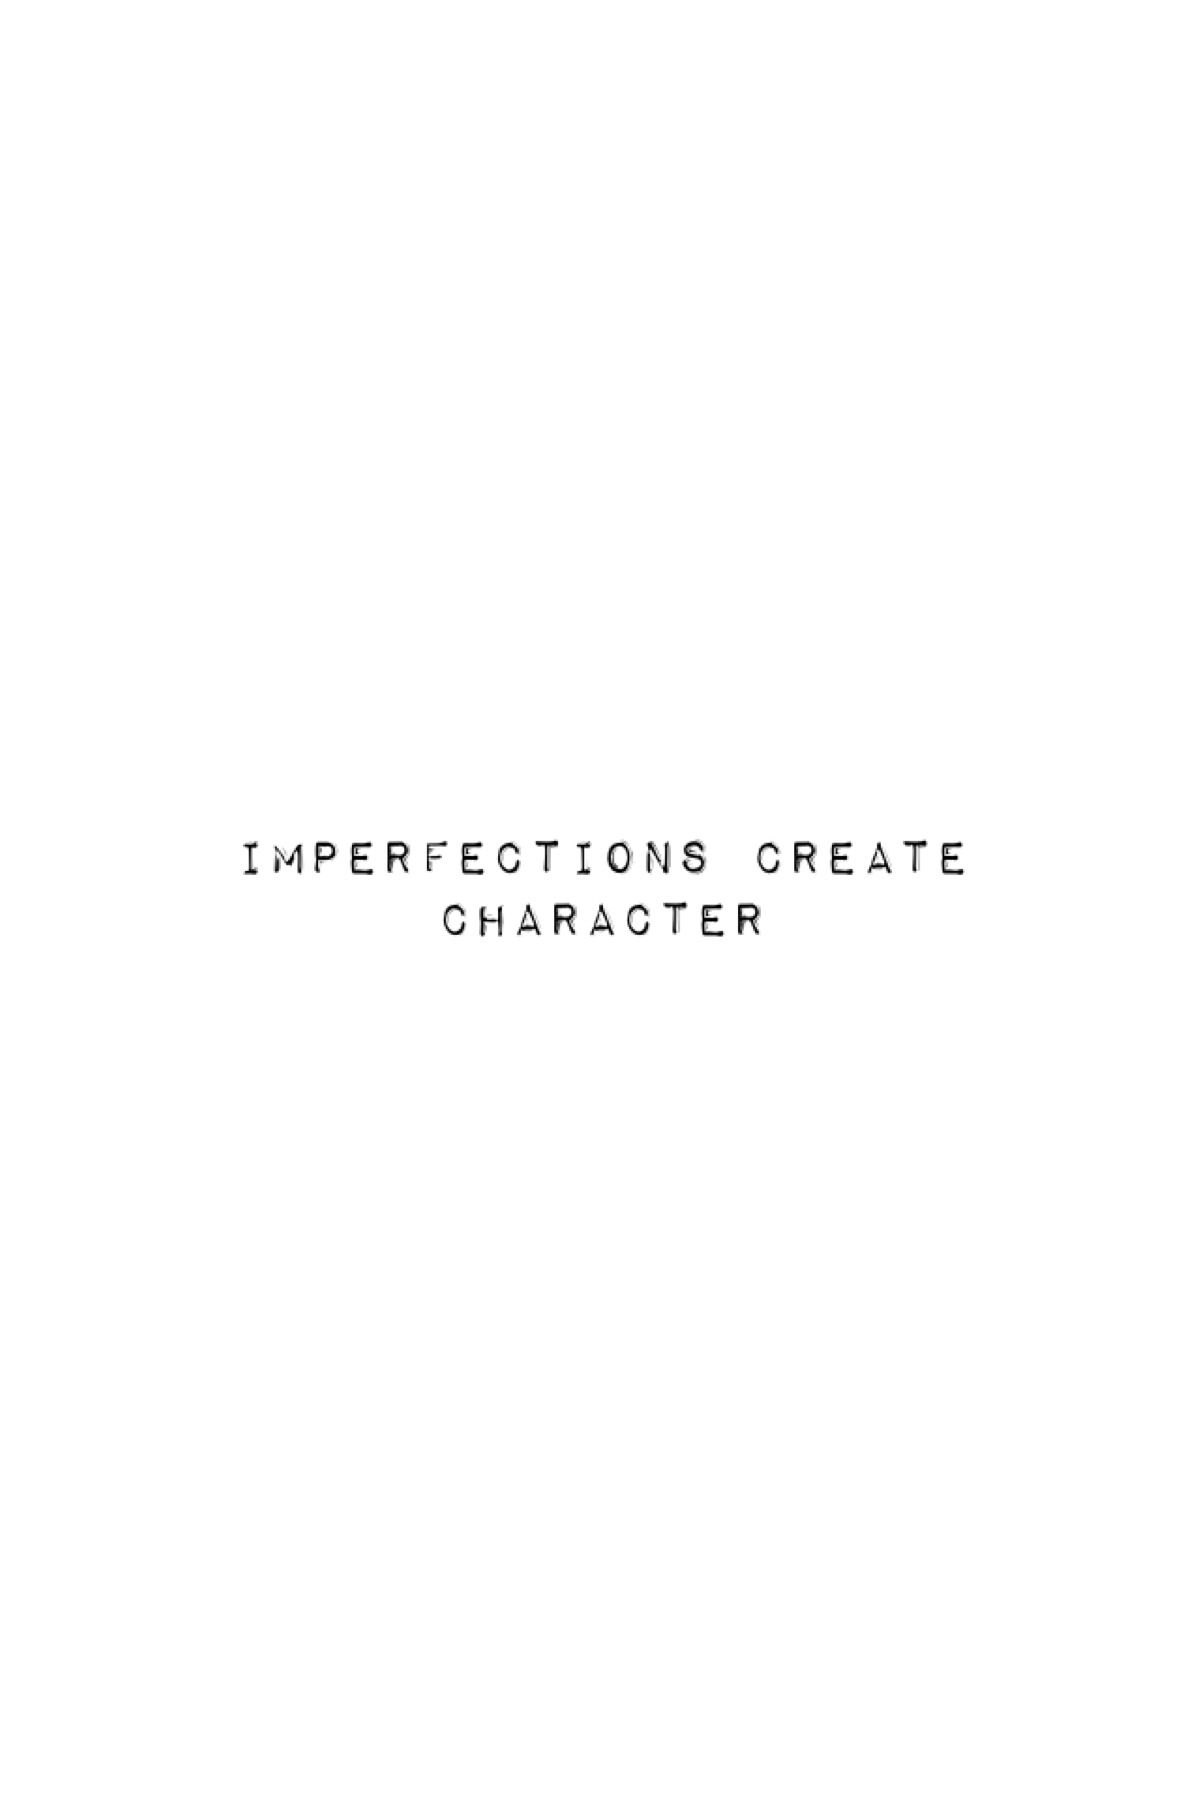 Imperfections Create Character #Quotes #Imperfections #Create #Character #ShortQuote #Short